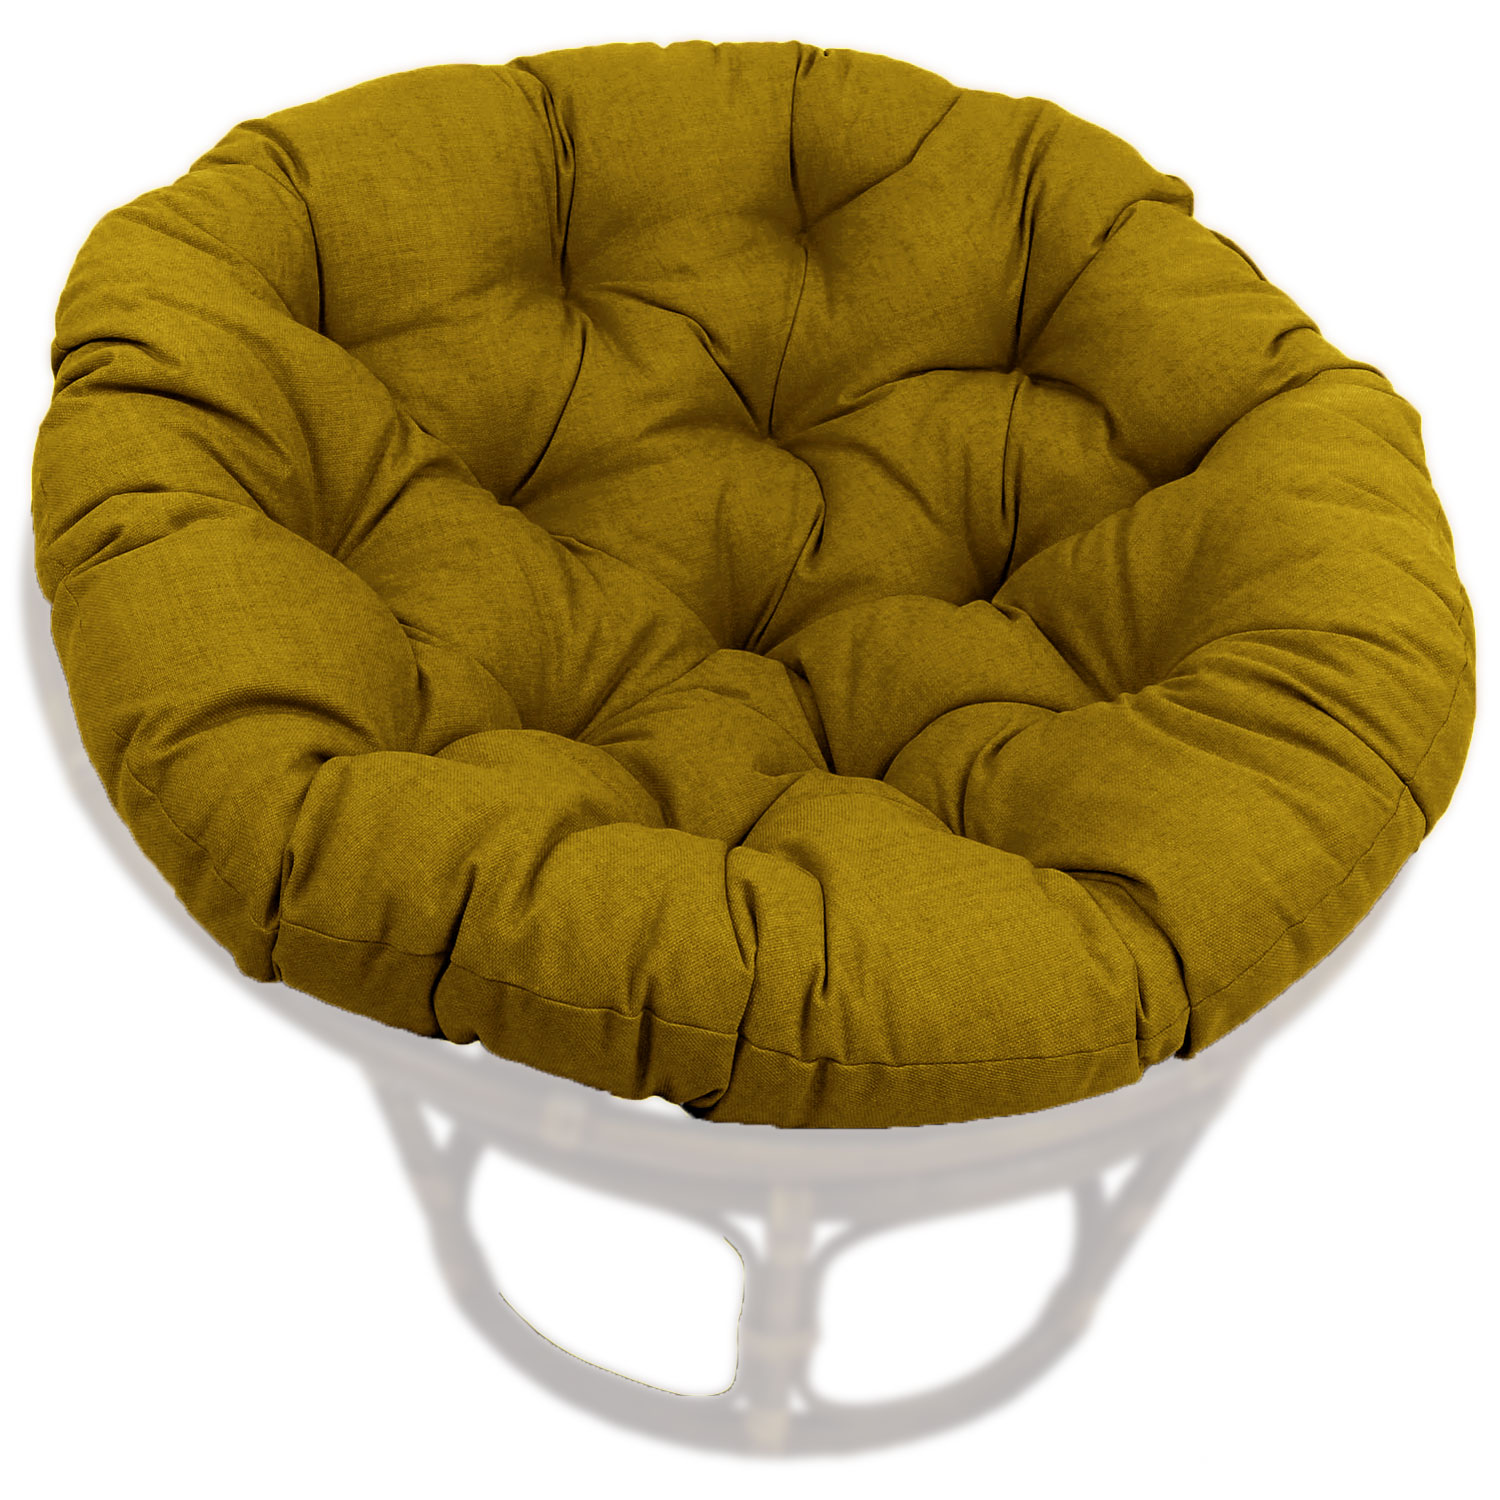 52 Inch Outdoor Fabric Tufted Papasan Cushion - BLZ-93302-52-SOL-REO